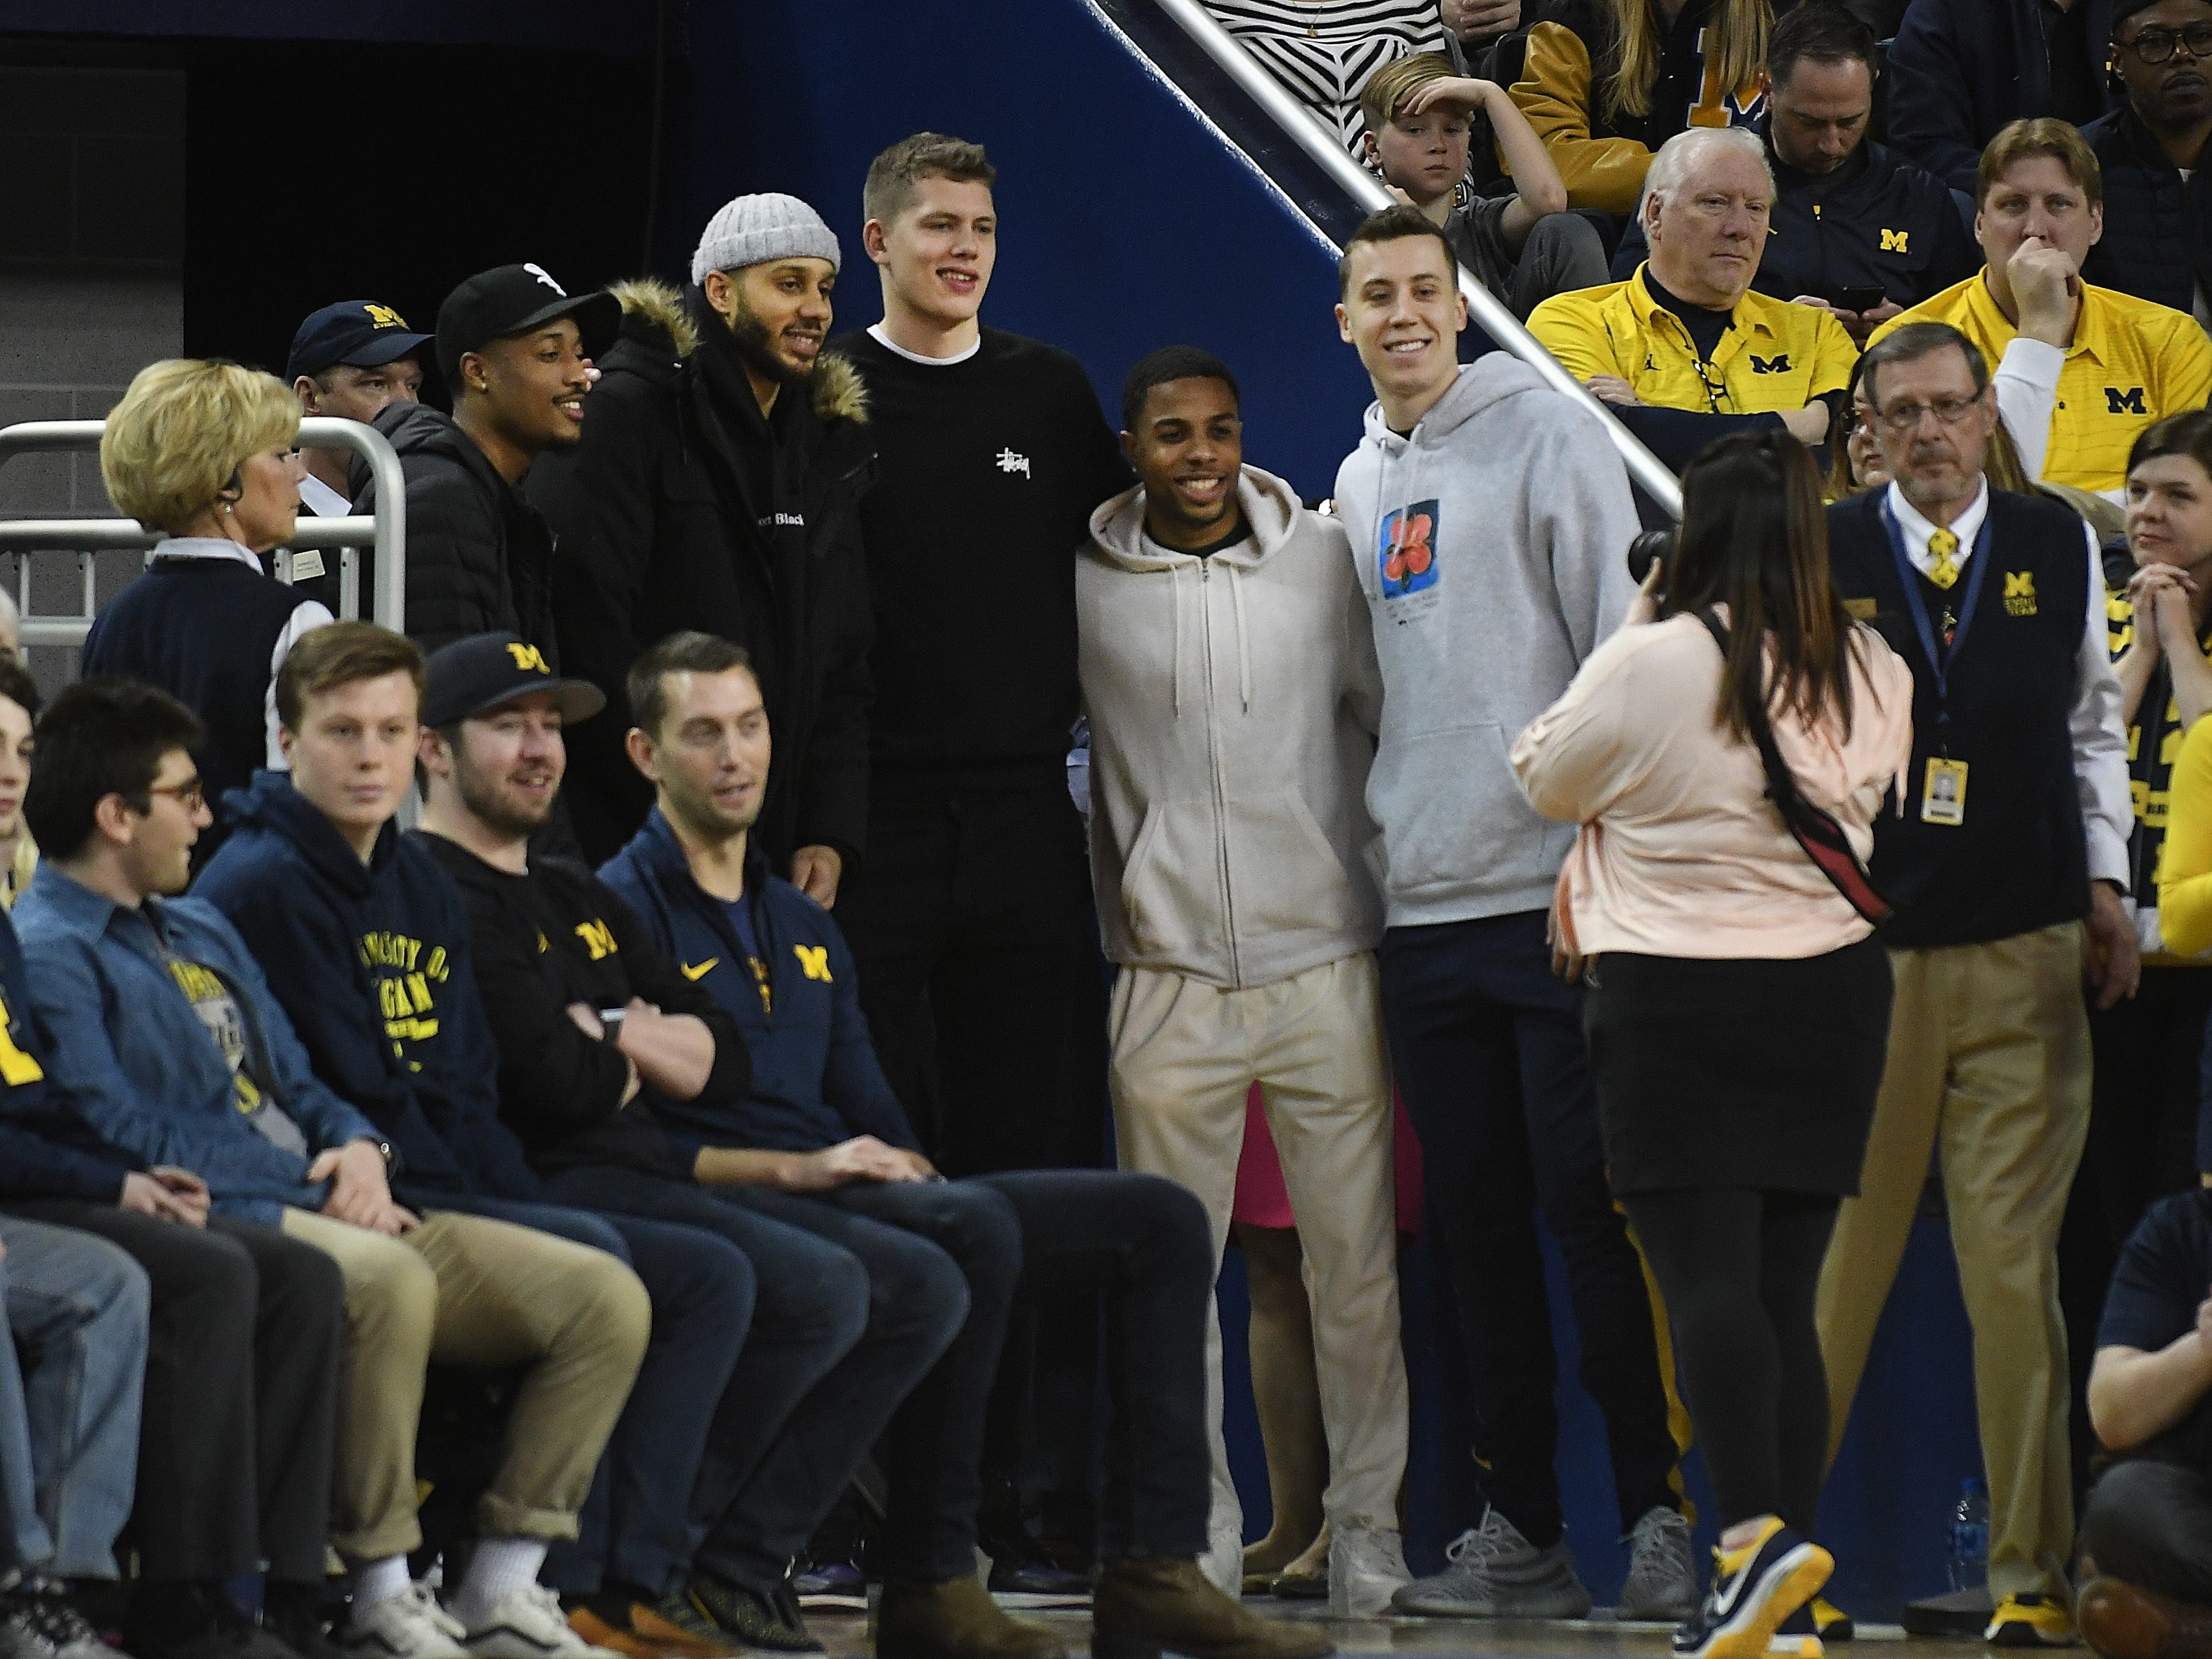 Former Michigan basketball players Muhammad-Ali Adbur-Rahkman, Jordan Morgan, Moritz Wagner, Jaaron Simmons and Duncan Robinson pose for a picture during a break in the action.